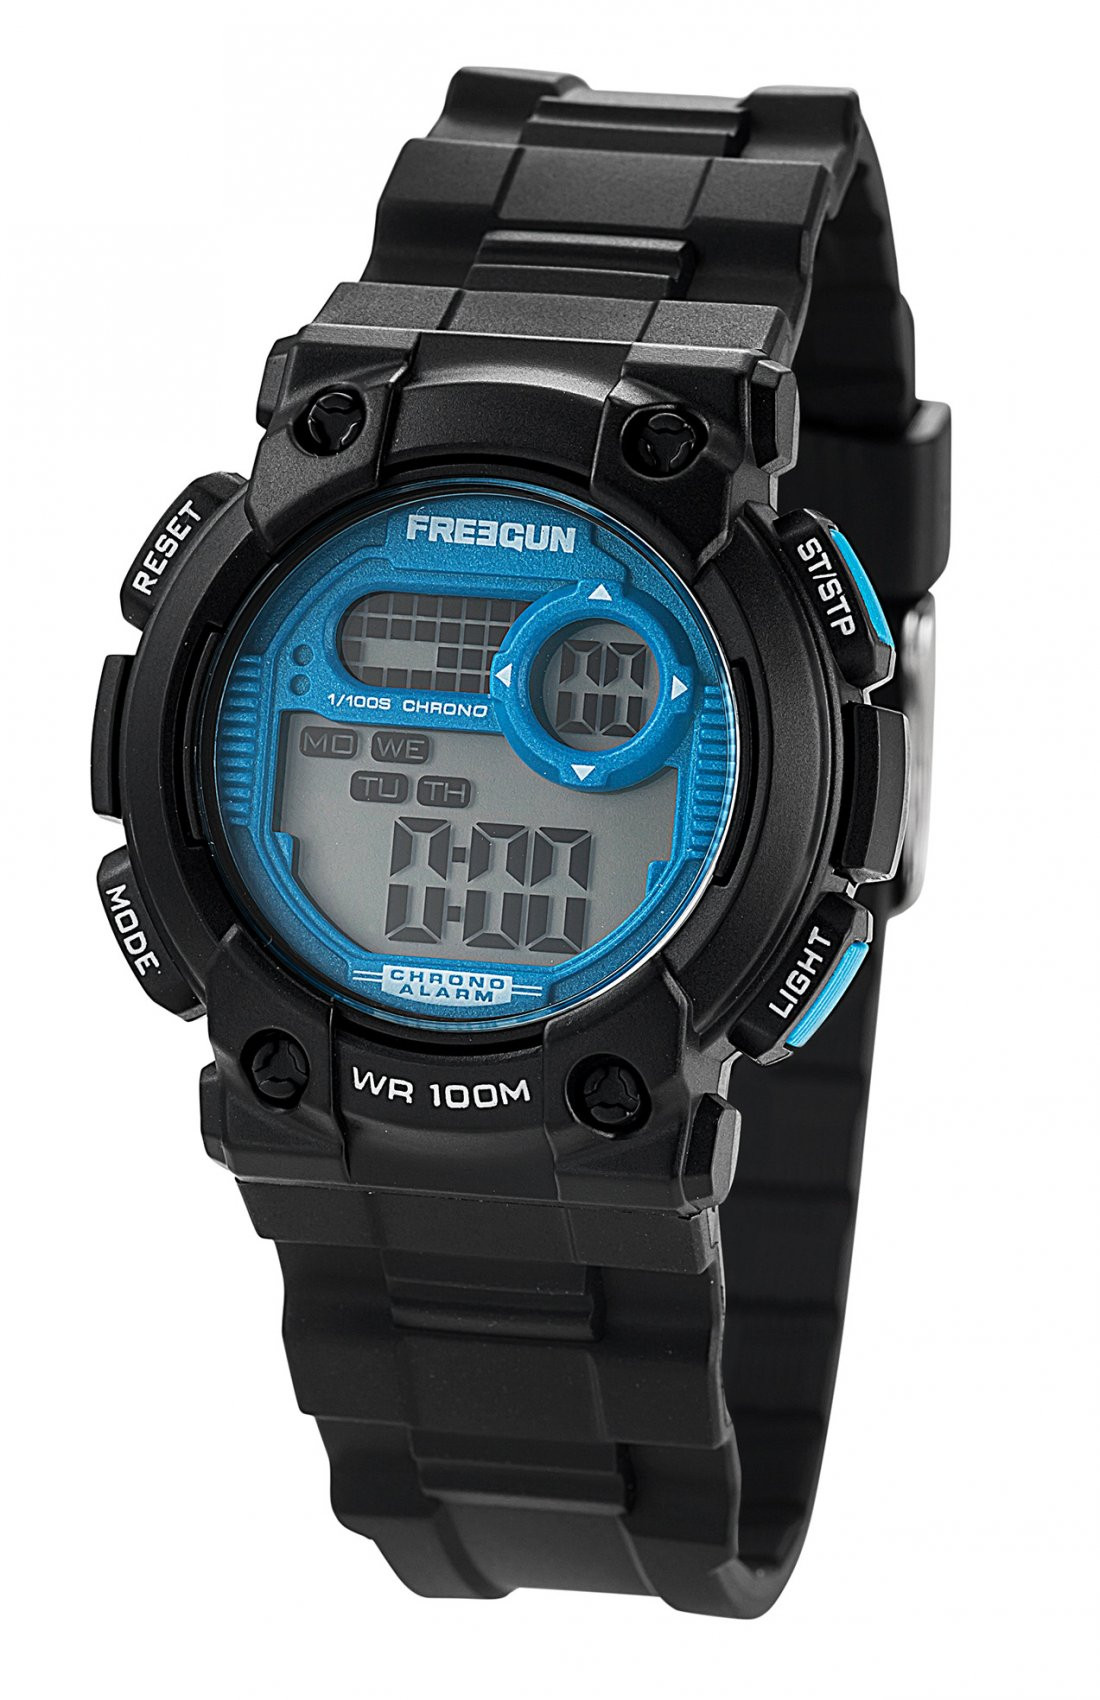 Montre lazer bleue freegun (photo)